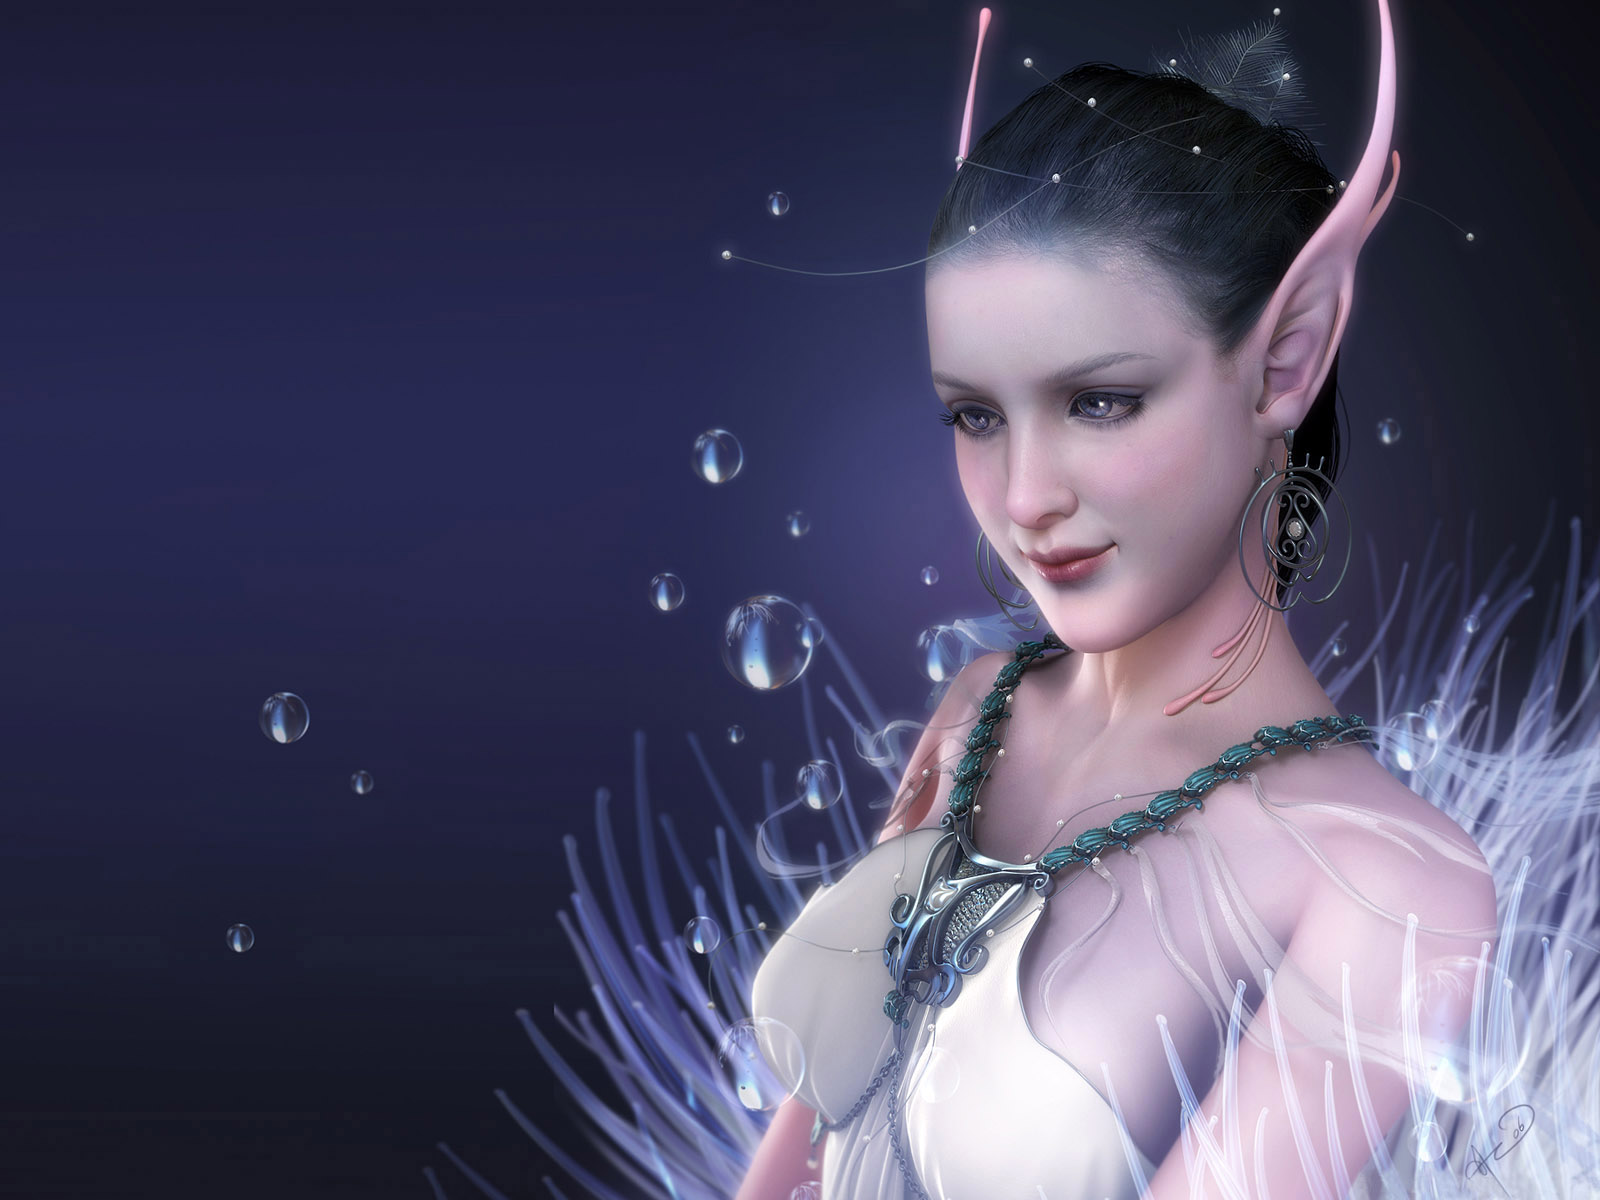 Fairy Woman Background Wallpapers on this Fairy Background Wallpapers 1600x1200